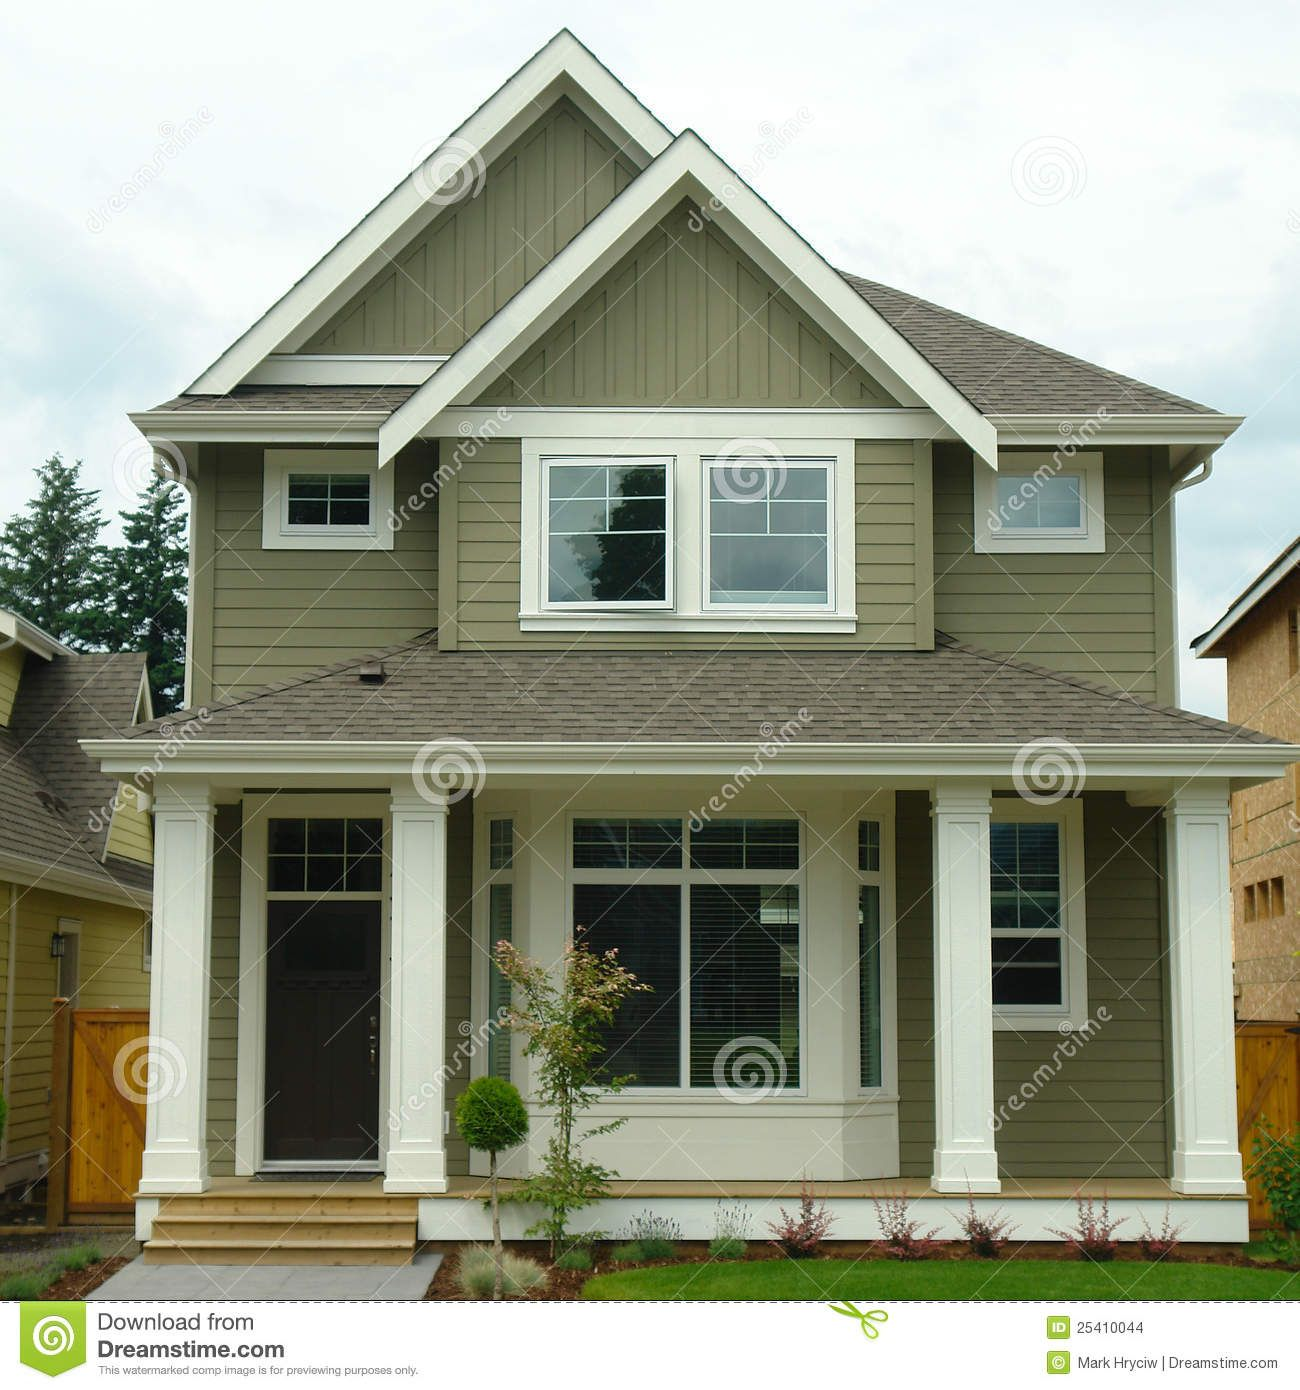 Forest green exterior house color new home house exterior green exterior house - Exterior home paint ...